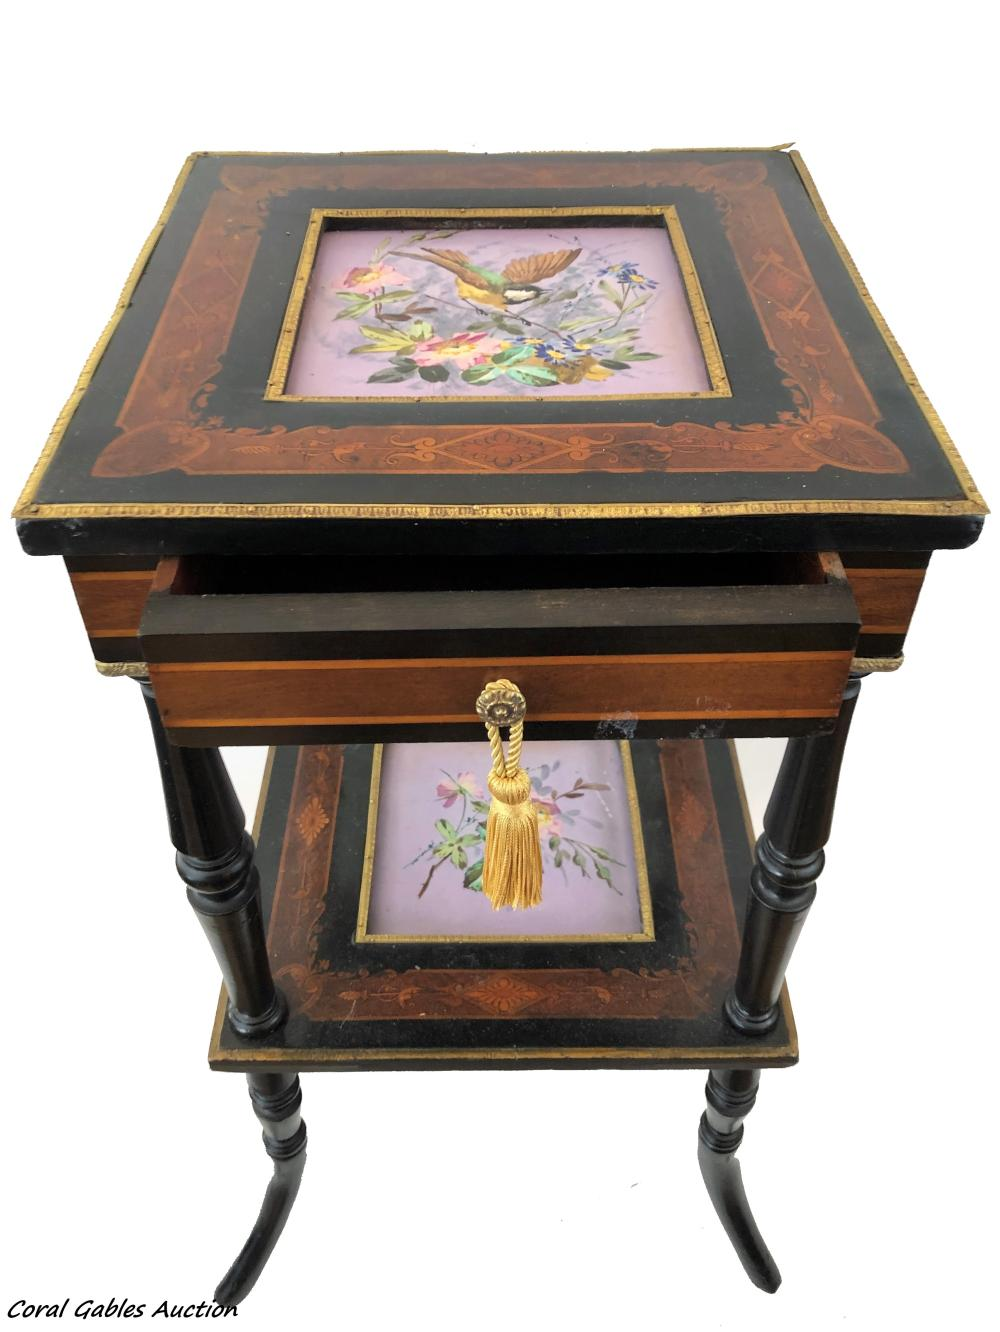 Wood table with porcelain plaques